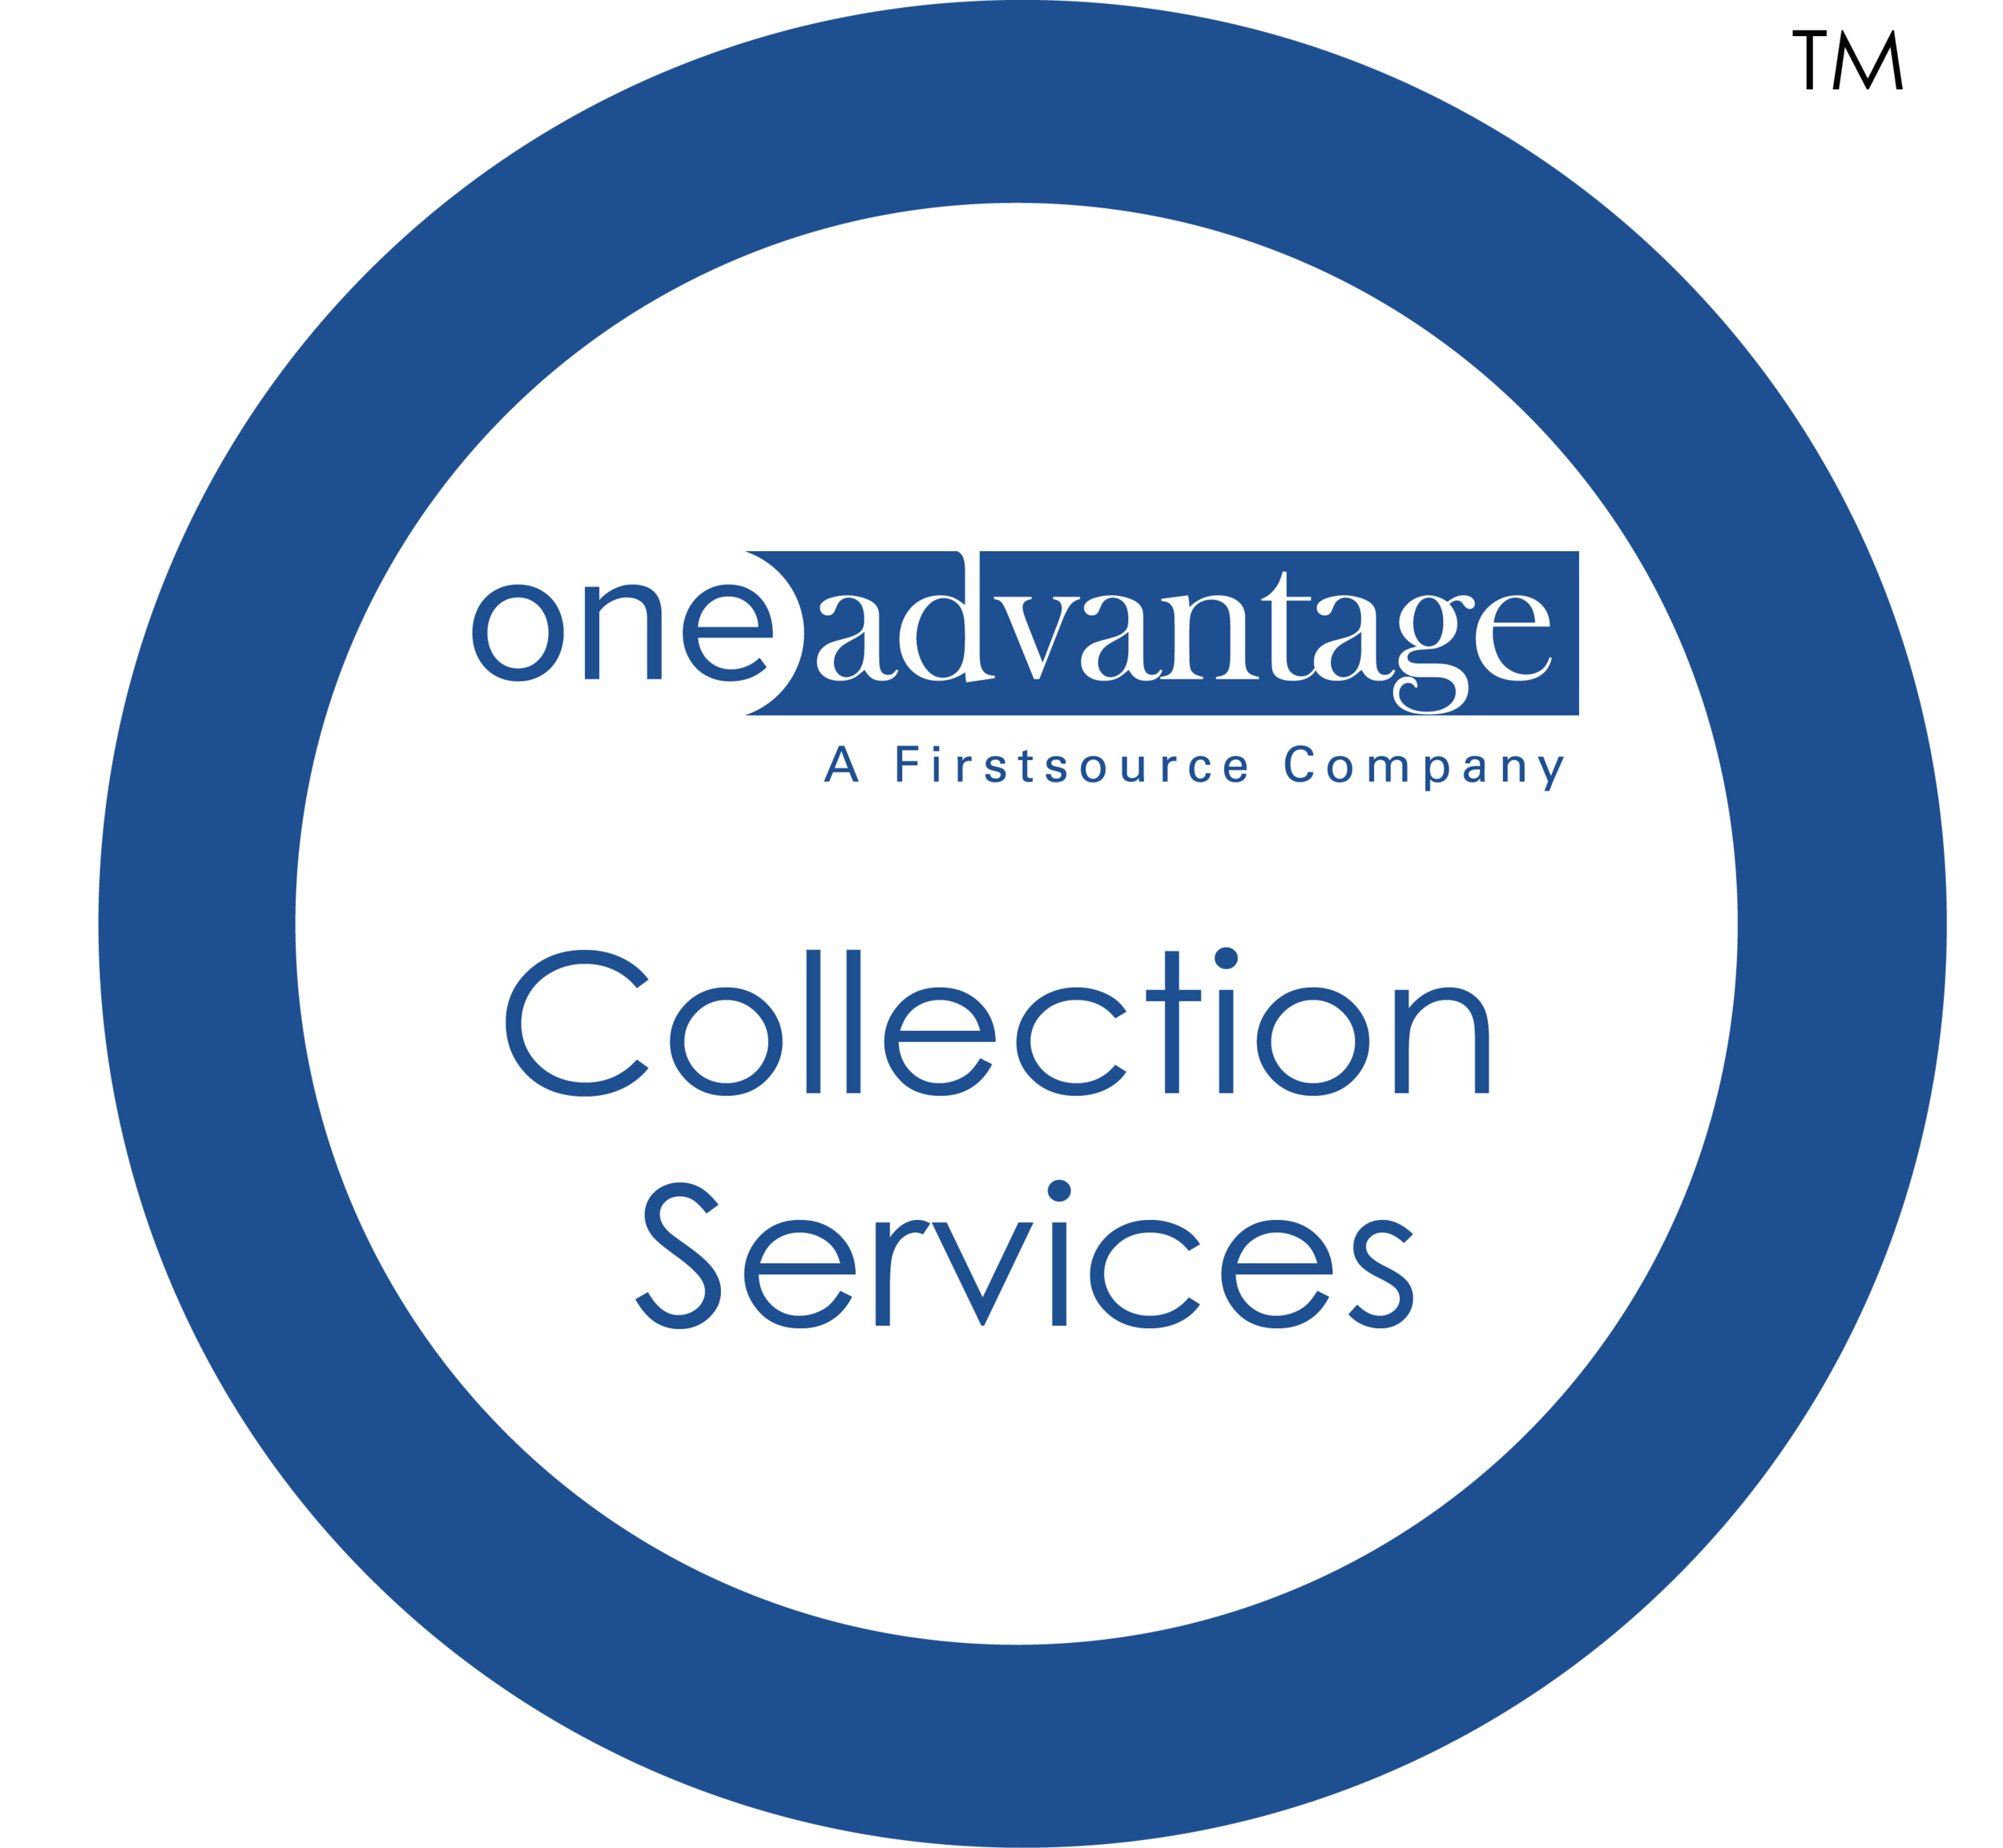 MedAssist One Advantage coin-01.png